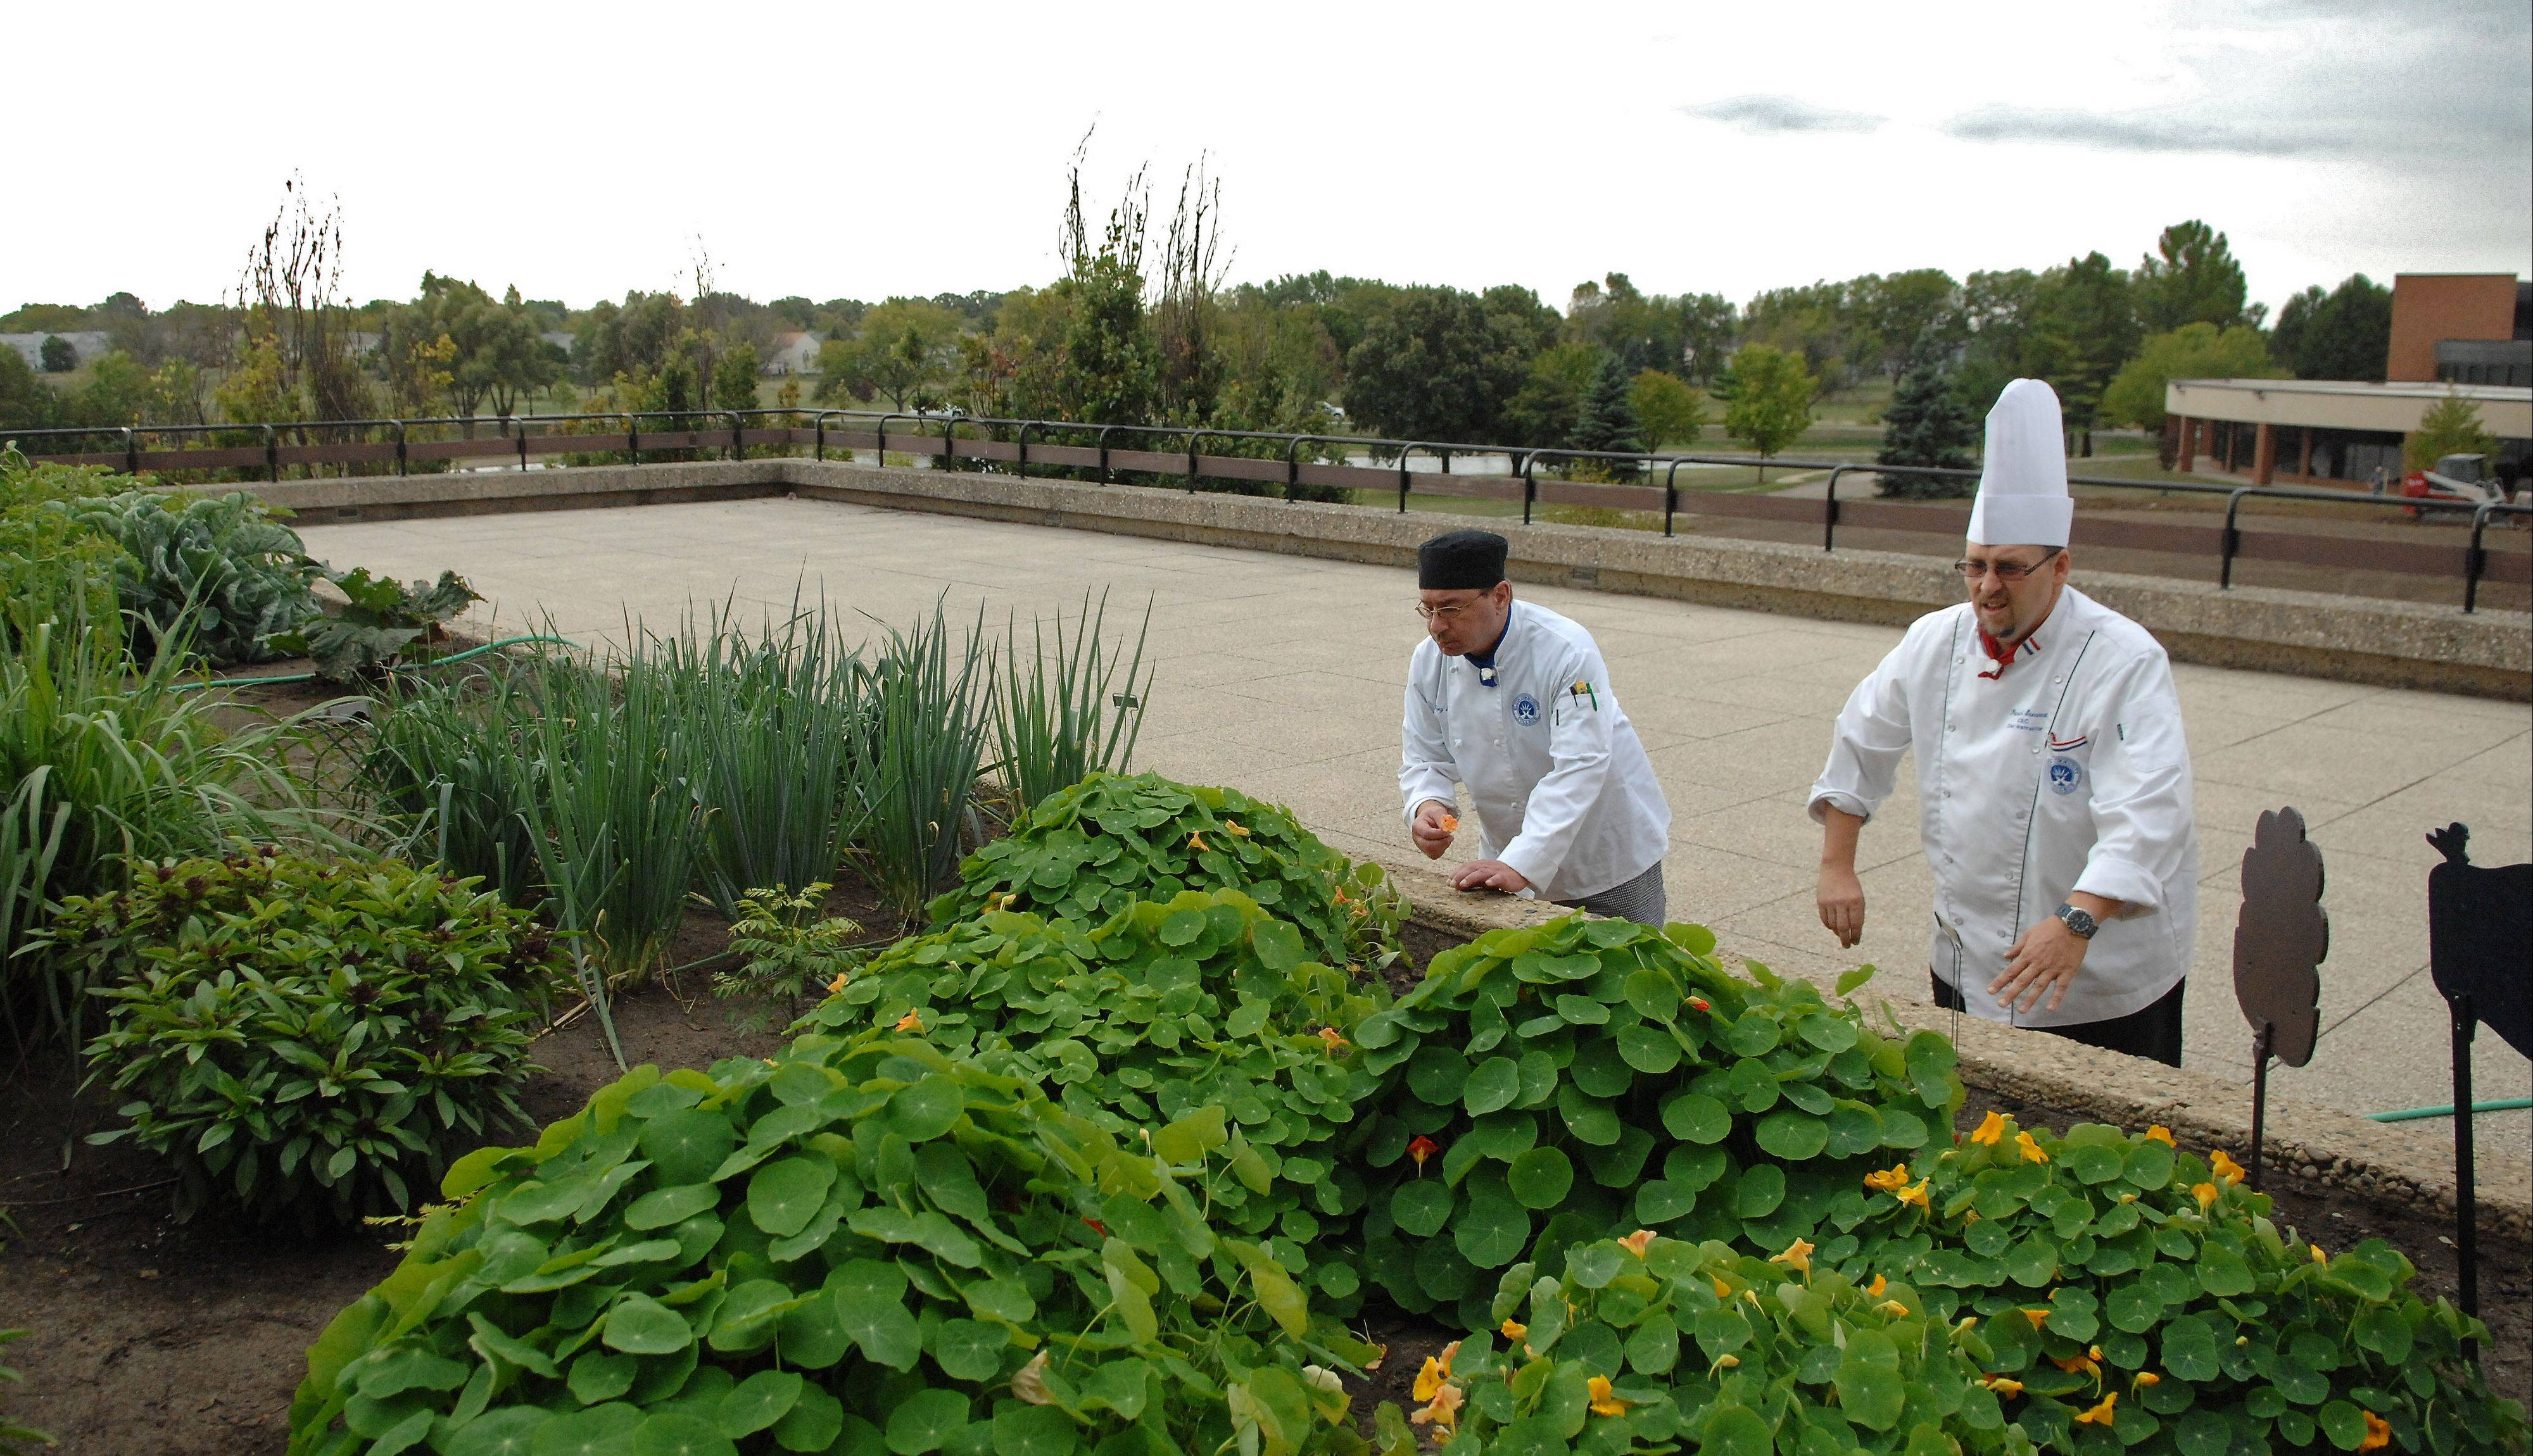 Culinary student Greg Slarich of Elgin, left, and instructor chef Patrick Stewart pick vegetables and herbs from Elgin Community College's rooftop garden on a recent afternoon.